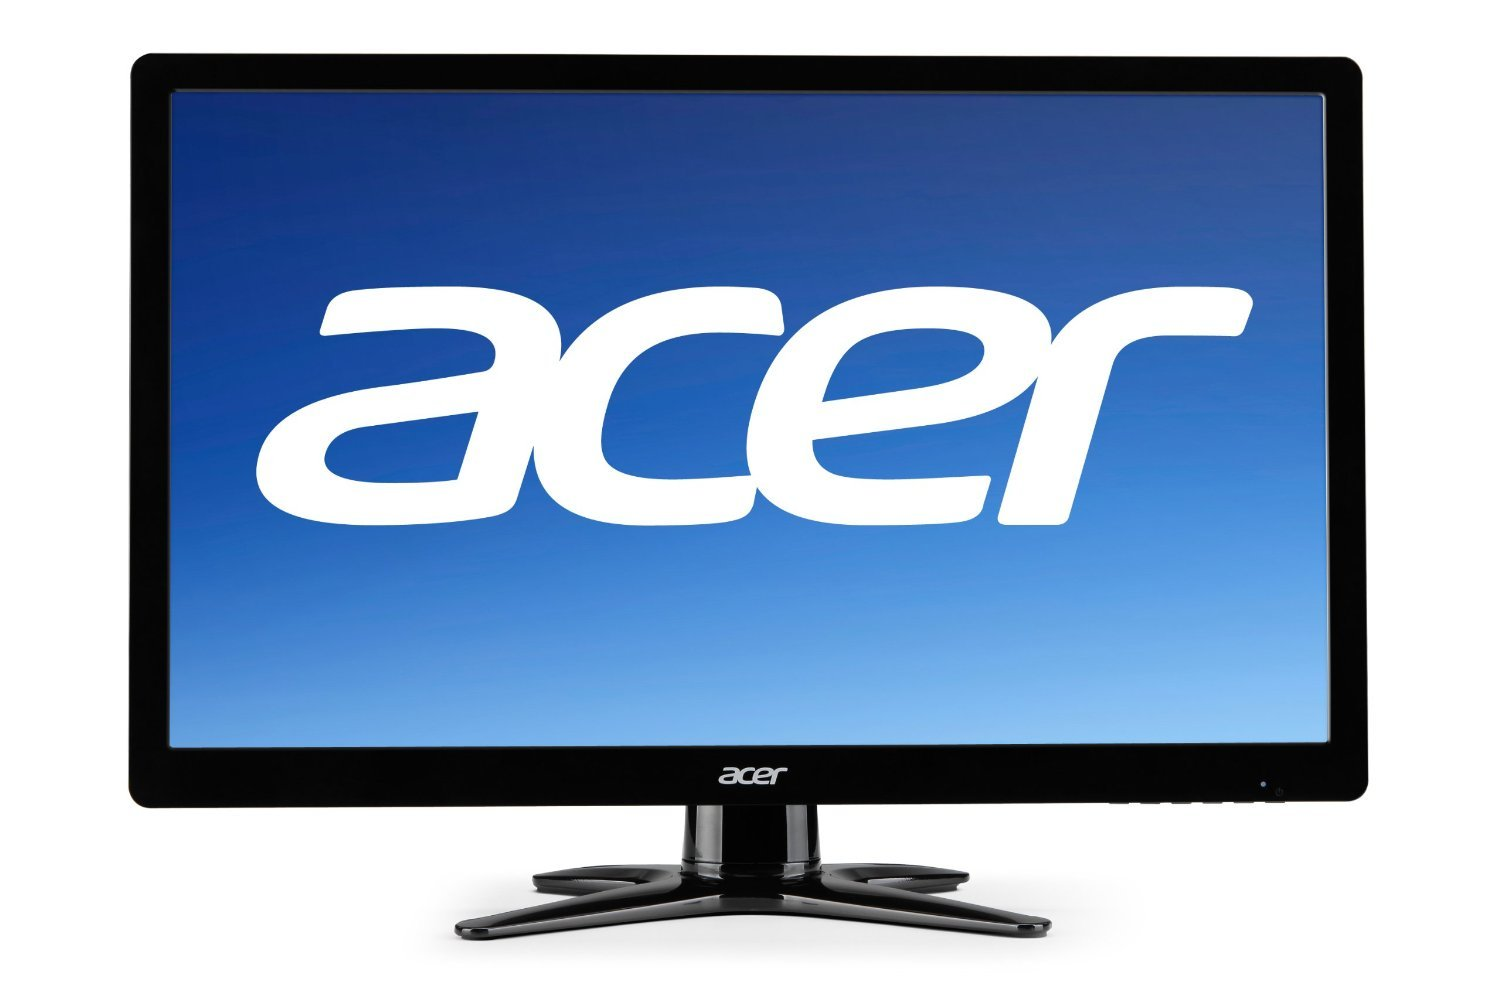 Acer G206HQL bd 19.5-Inch LED Back-Lit Widescreen Display [並行輸入品] B016PU8E1A